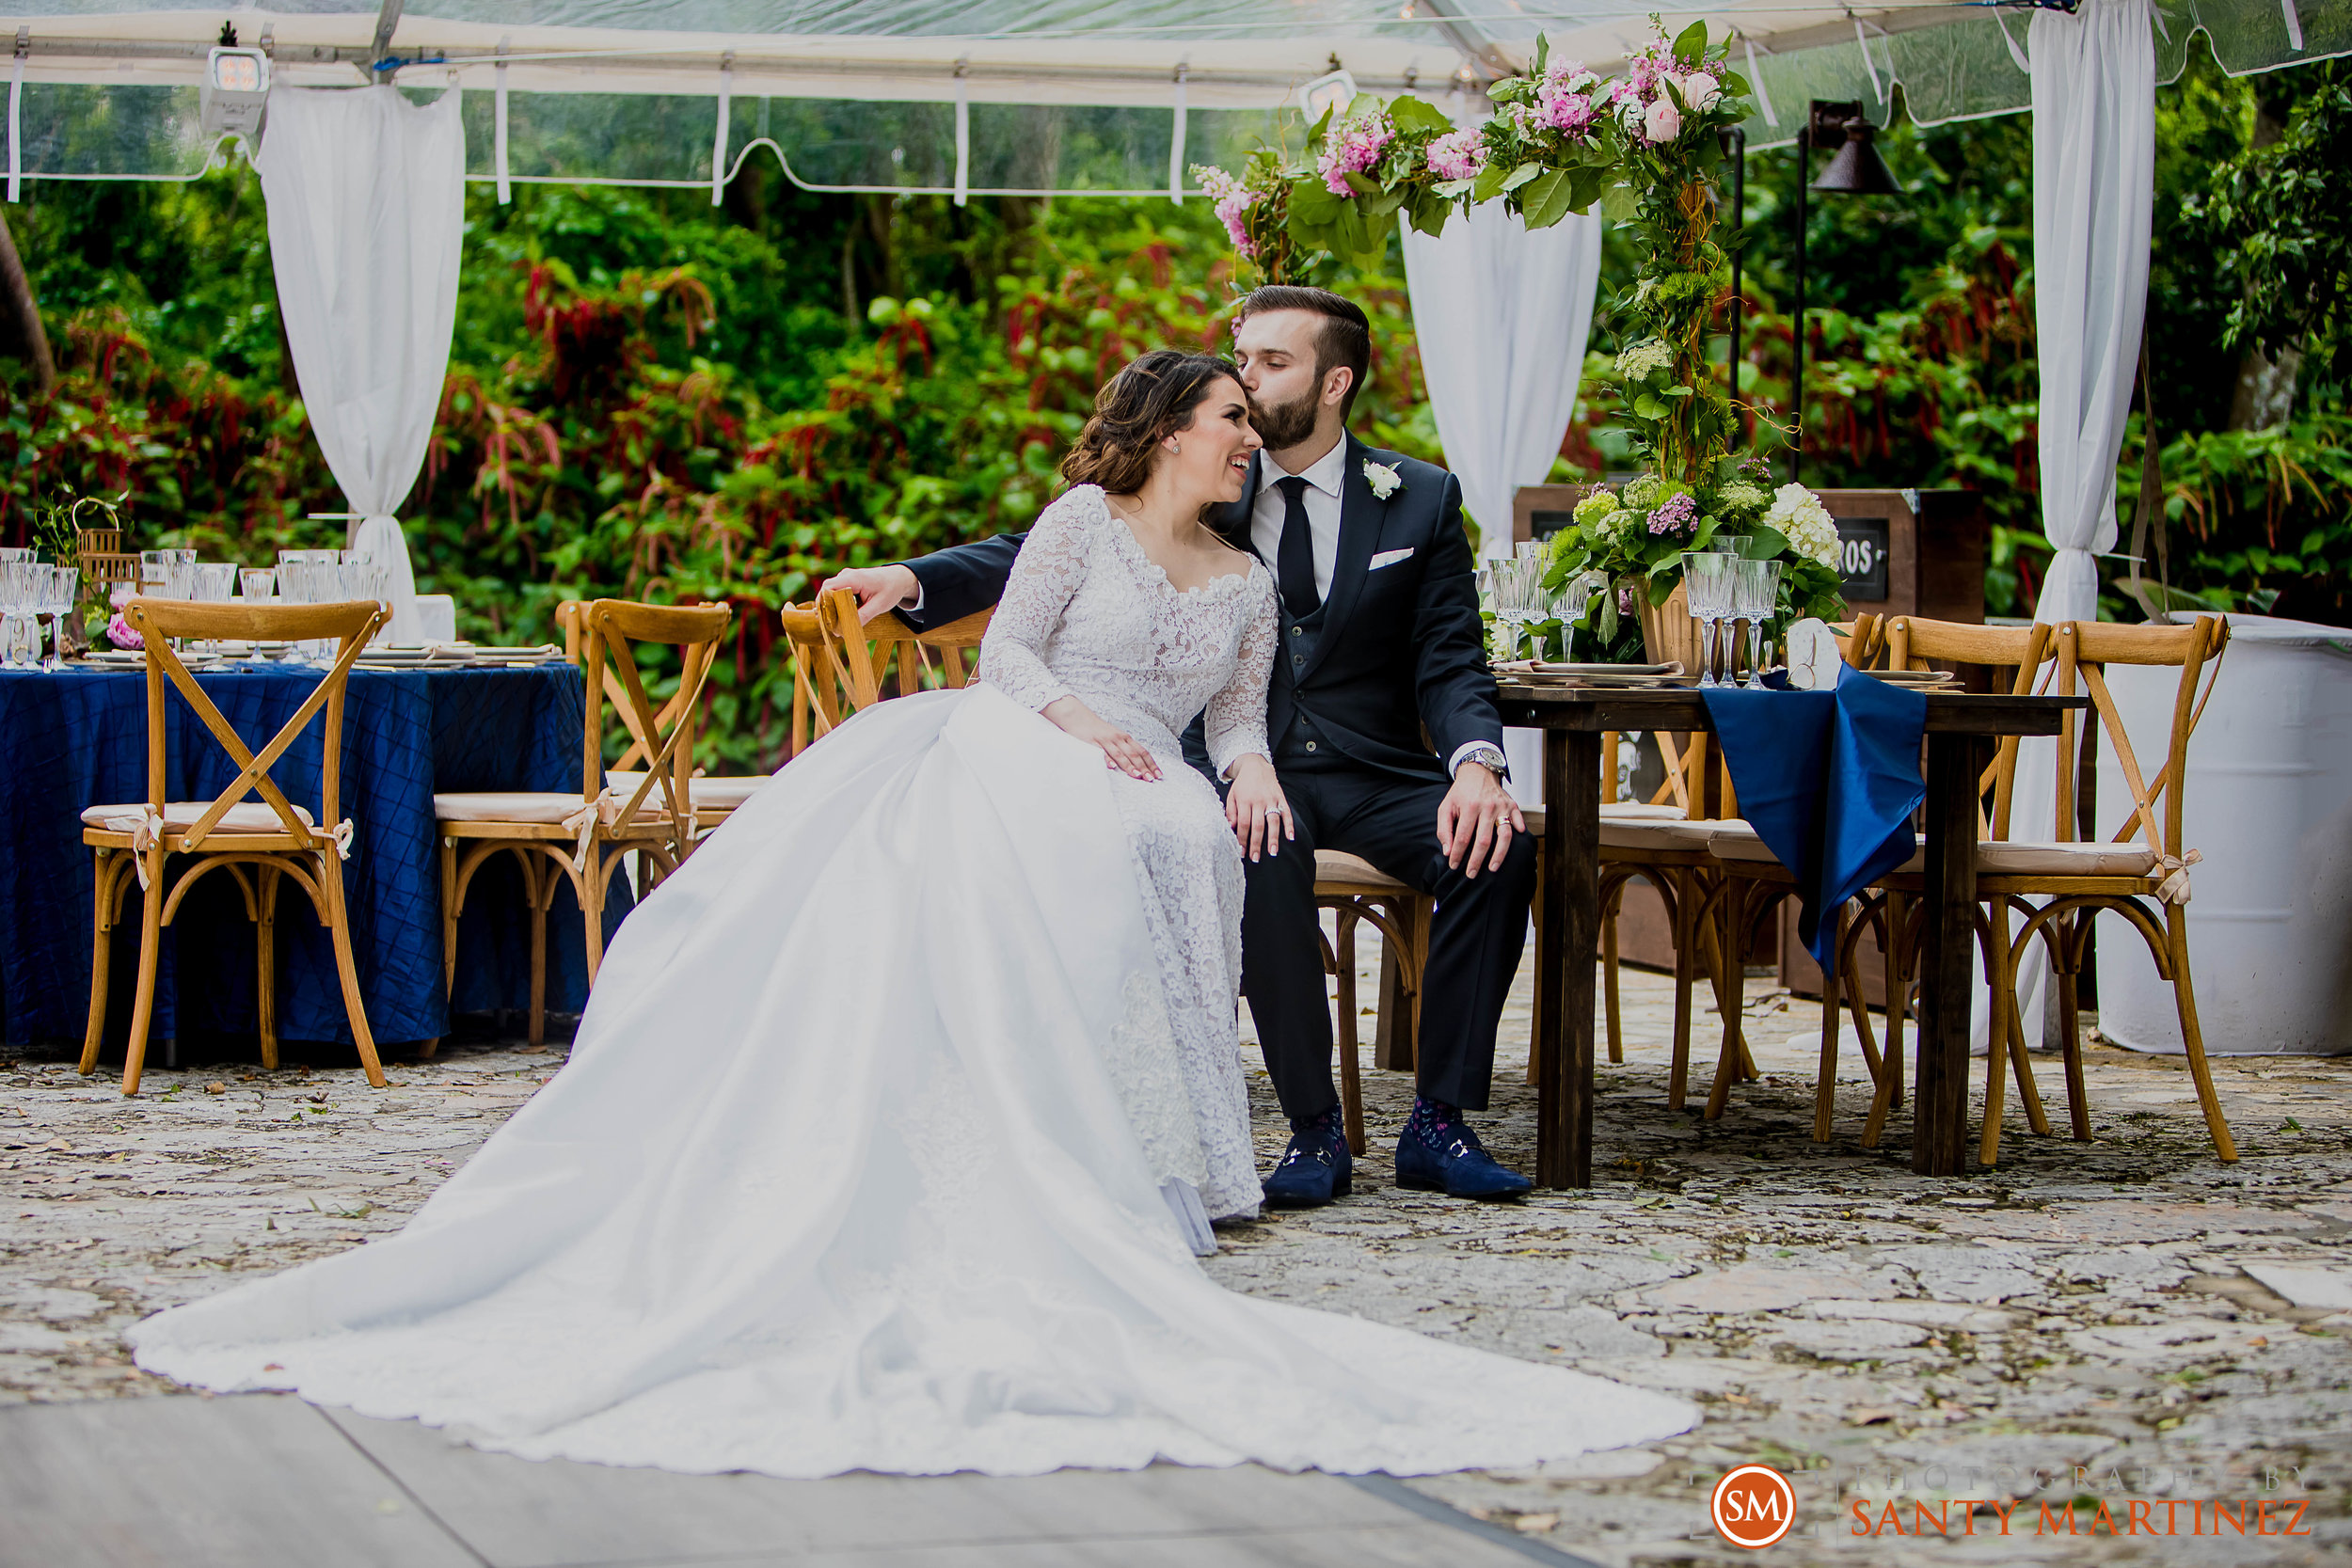 Deering Estate Wedding - Santy Martinez Photography-55.jpg